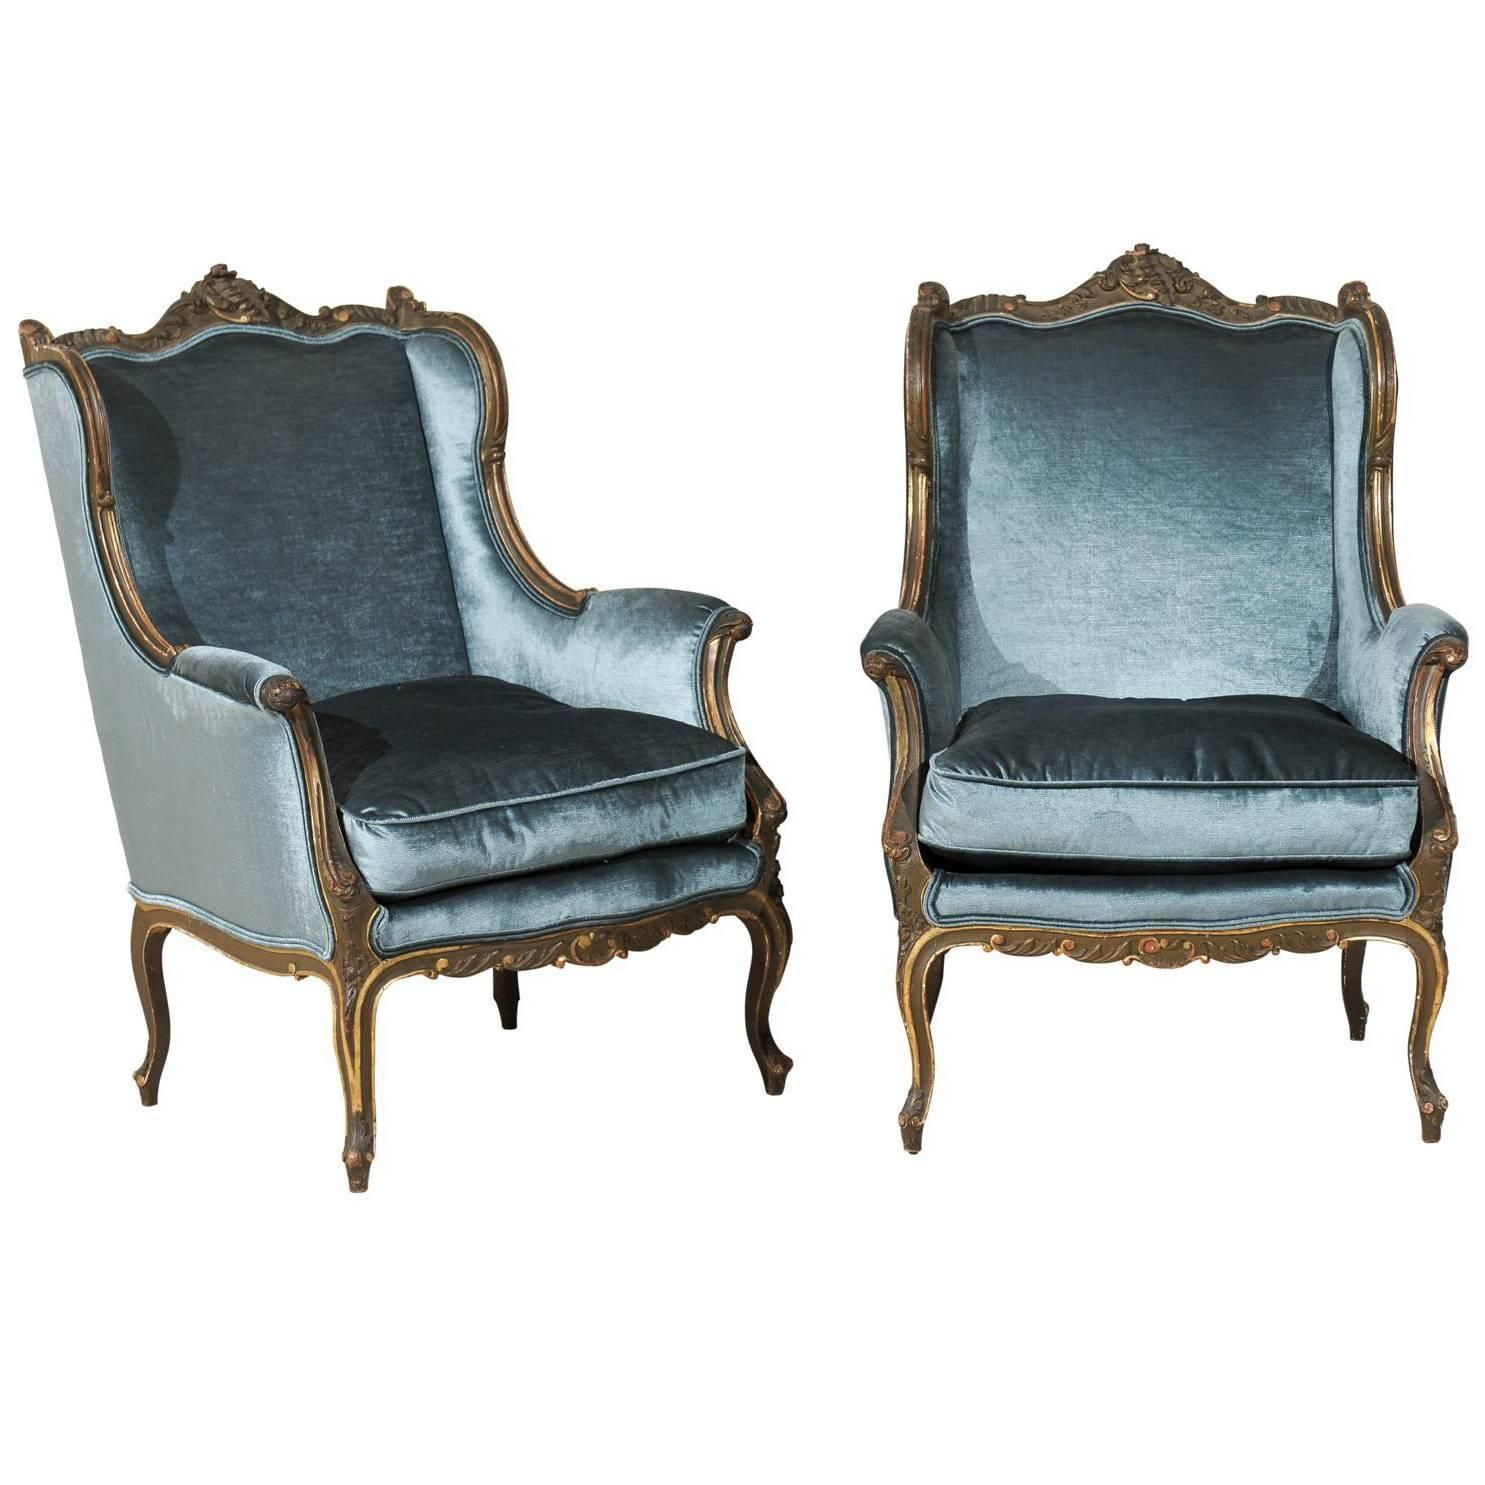 Pair of Late 19th Century Louis XV Style French Bergères